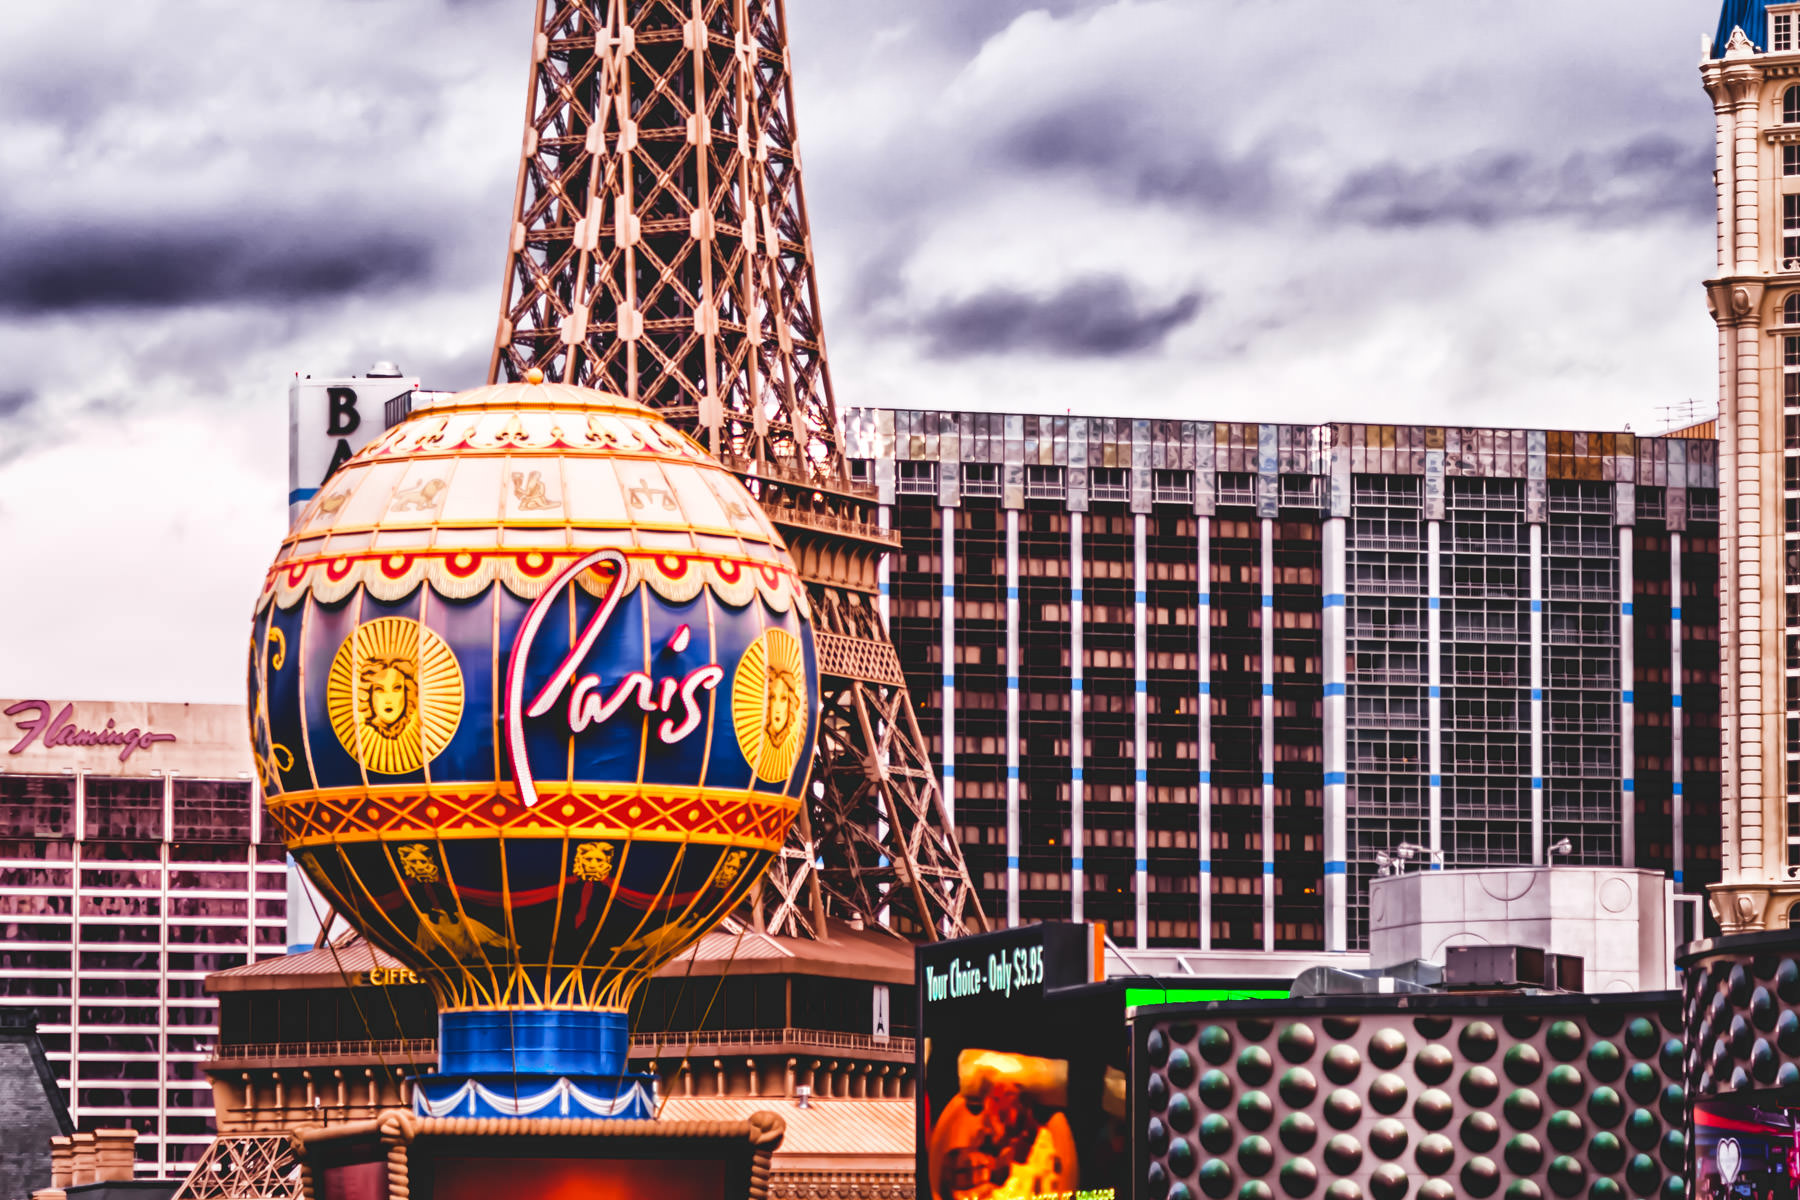 Portions of Planet Hollywood, Ballys, Paris and The Flamingo compressed together in Las Vegas.